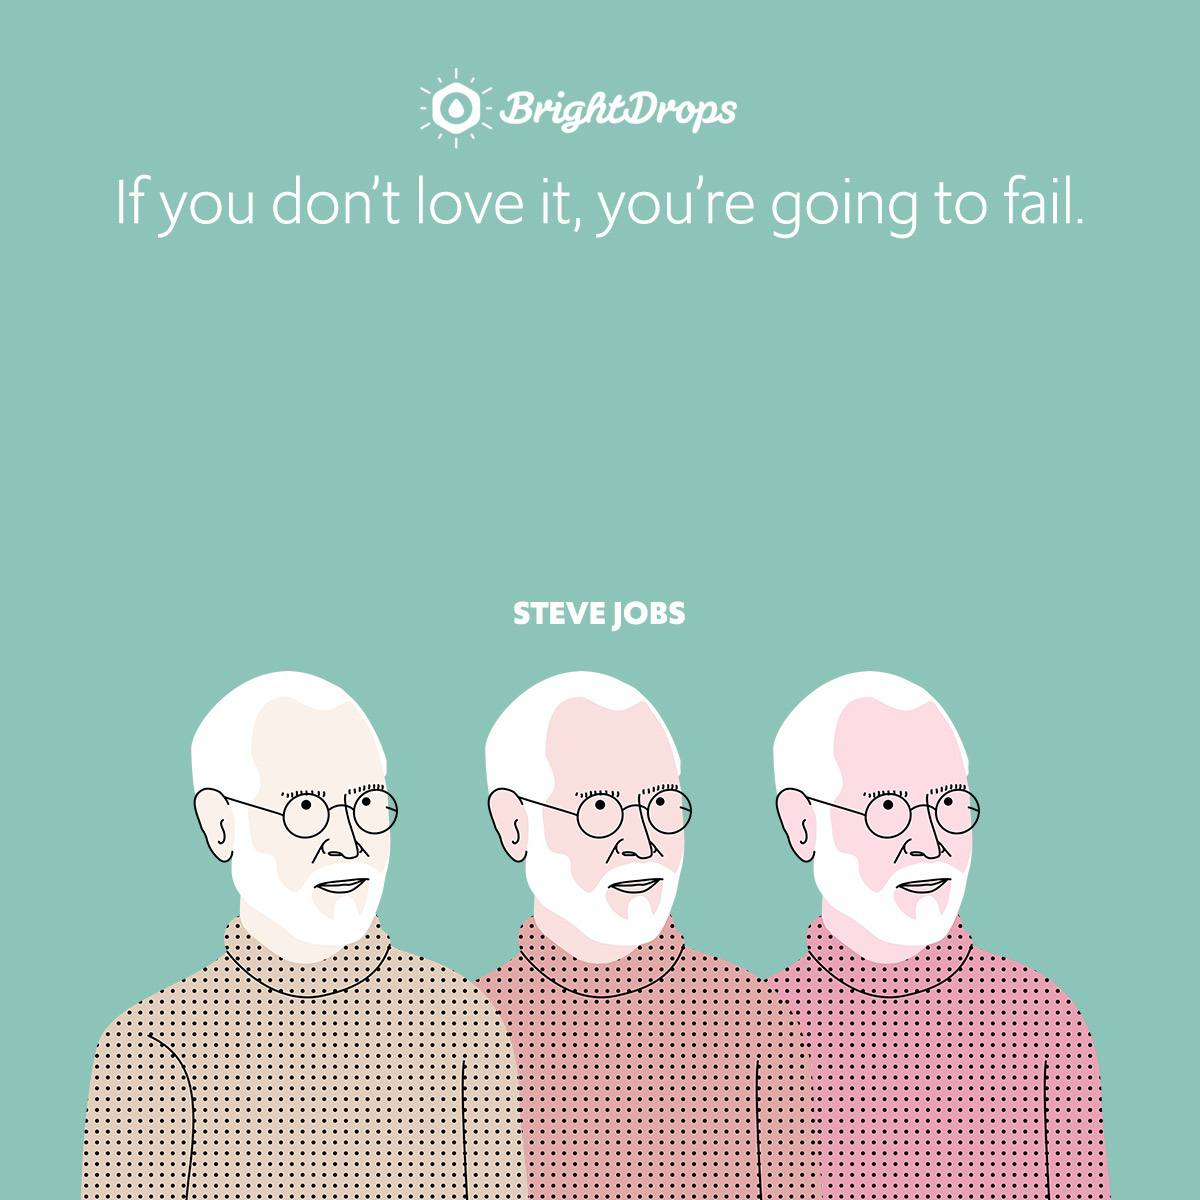 If you don't love it, you're going to fail.